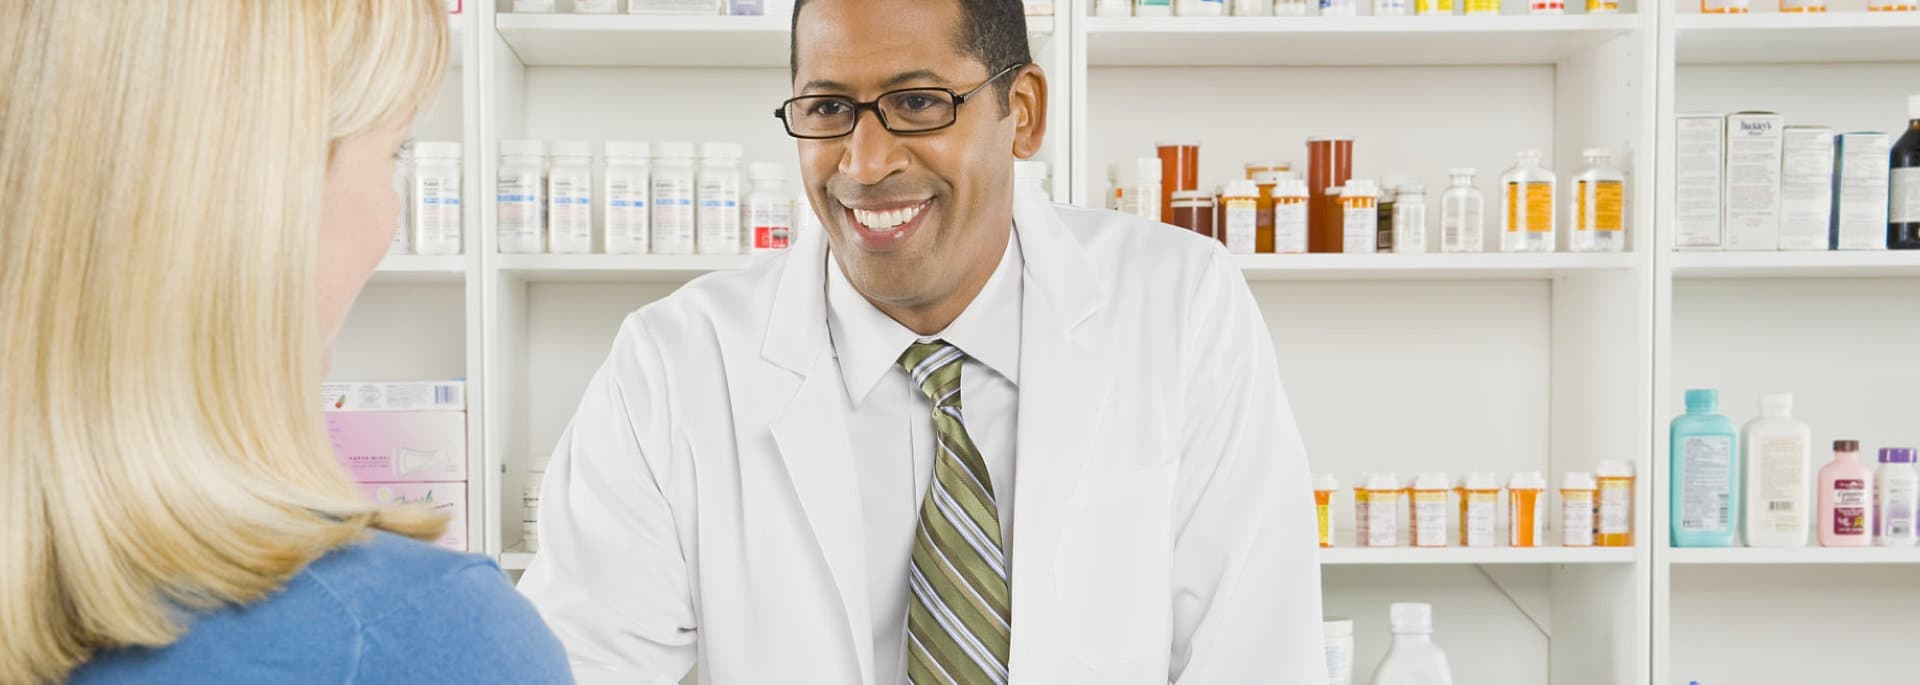 pharmacist and the woman